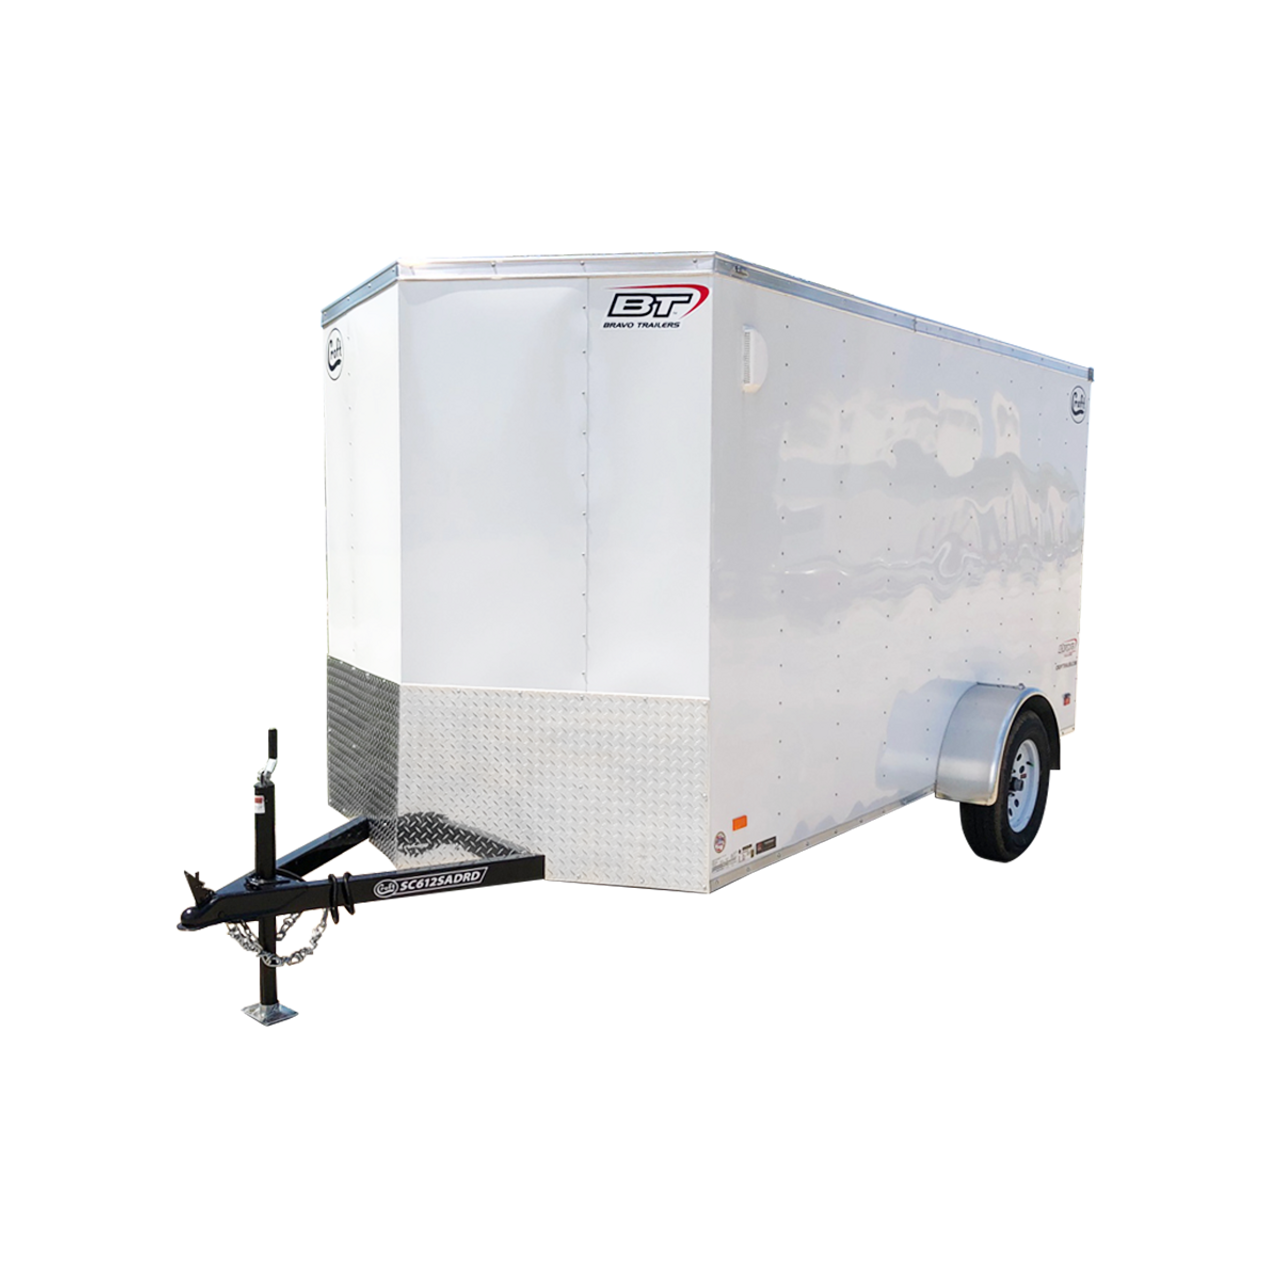 SC612SADGT --- 6' X 12' Enclosed Trailer with Double Rear Doors - Torsion - Bravo